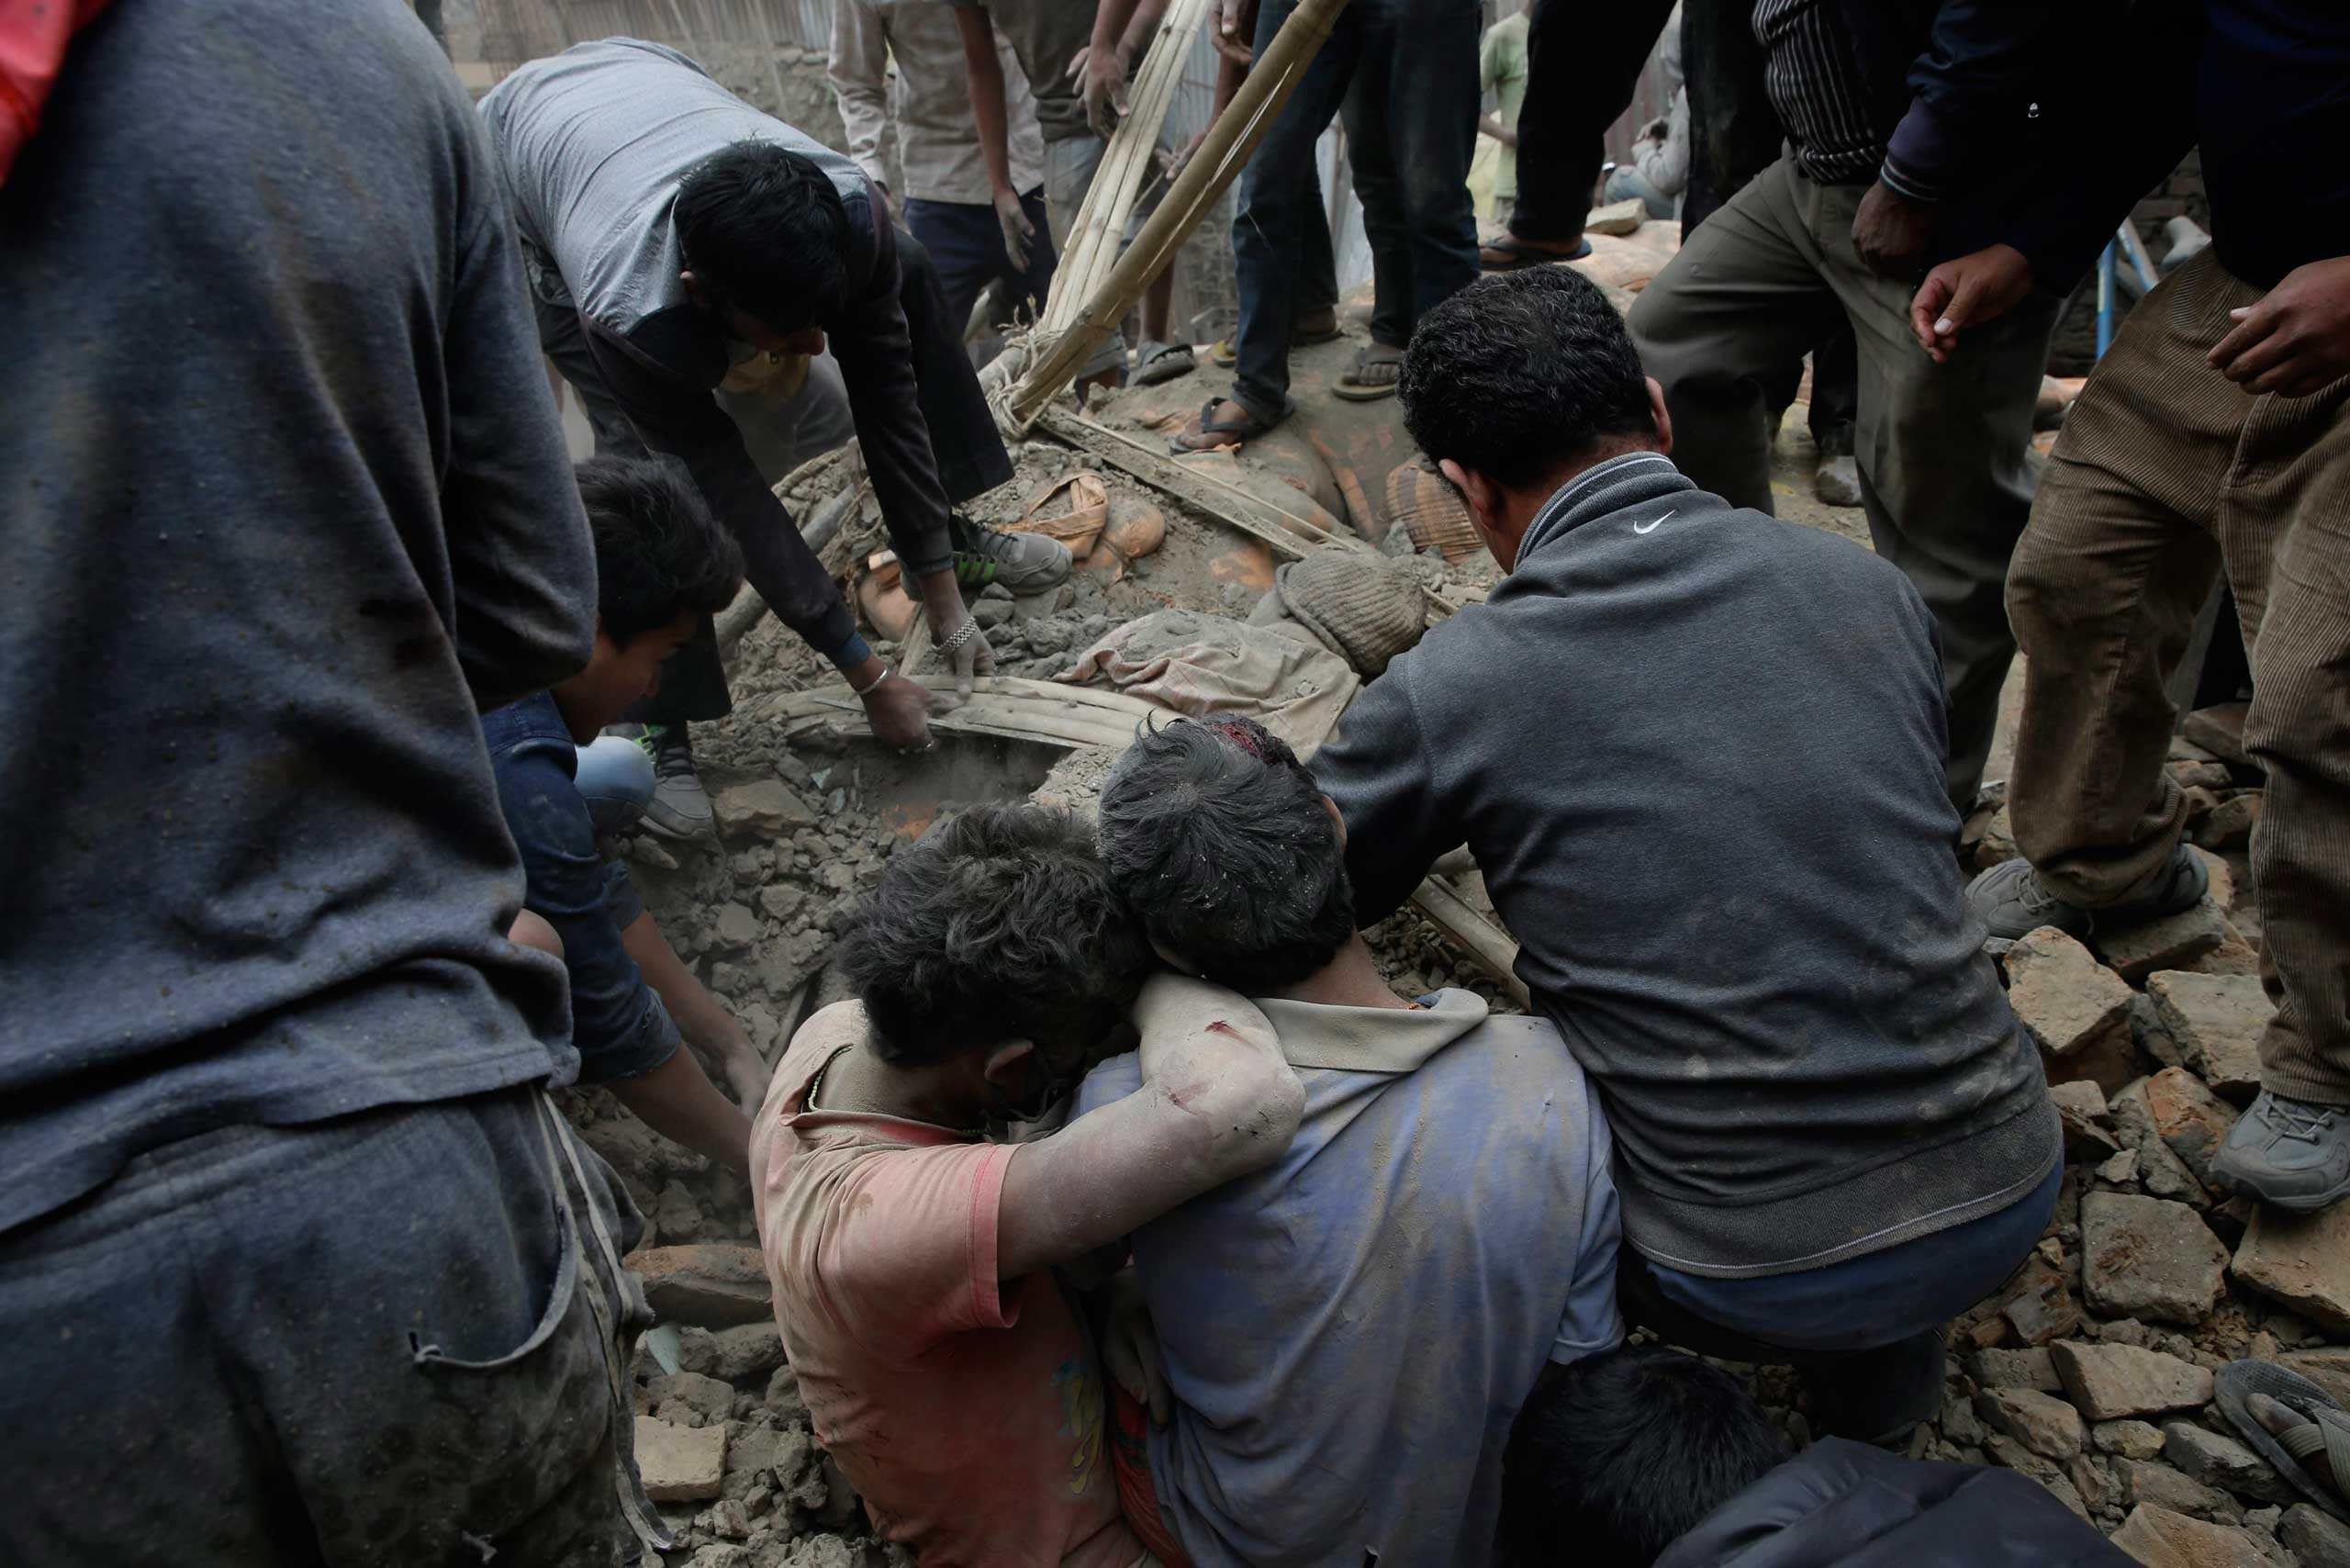 People work to free a man trapped in debris in Kathmandu.